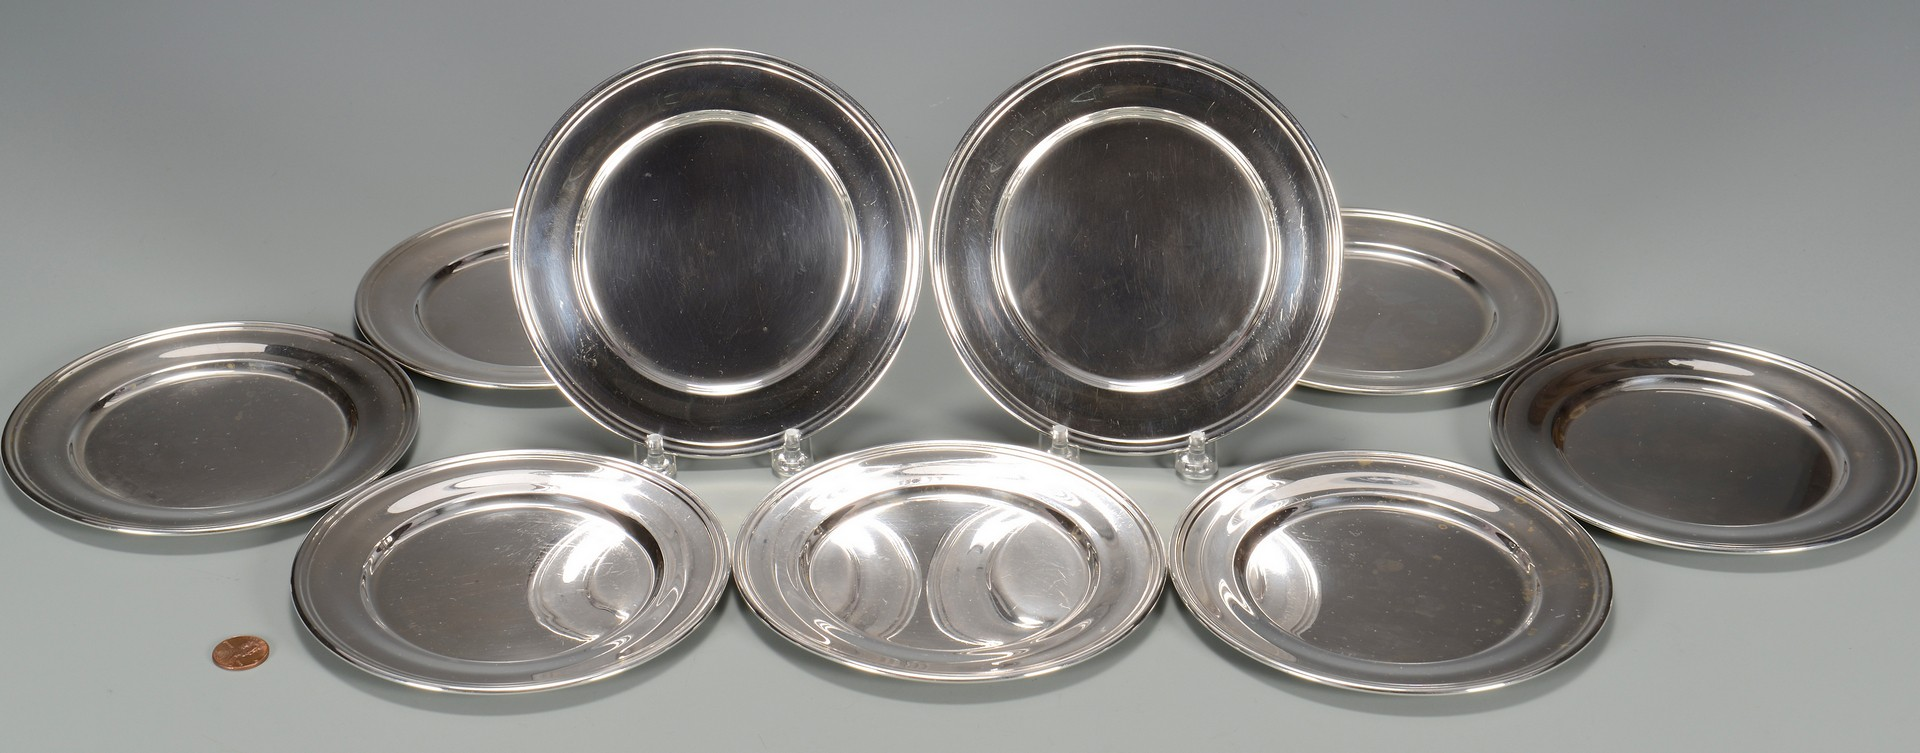 Lot 672: 9 Kirk Sterling Bread Plates